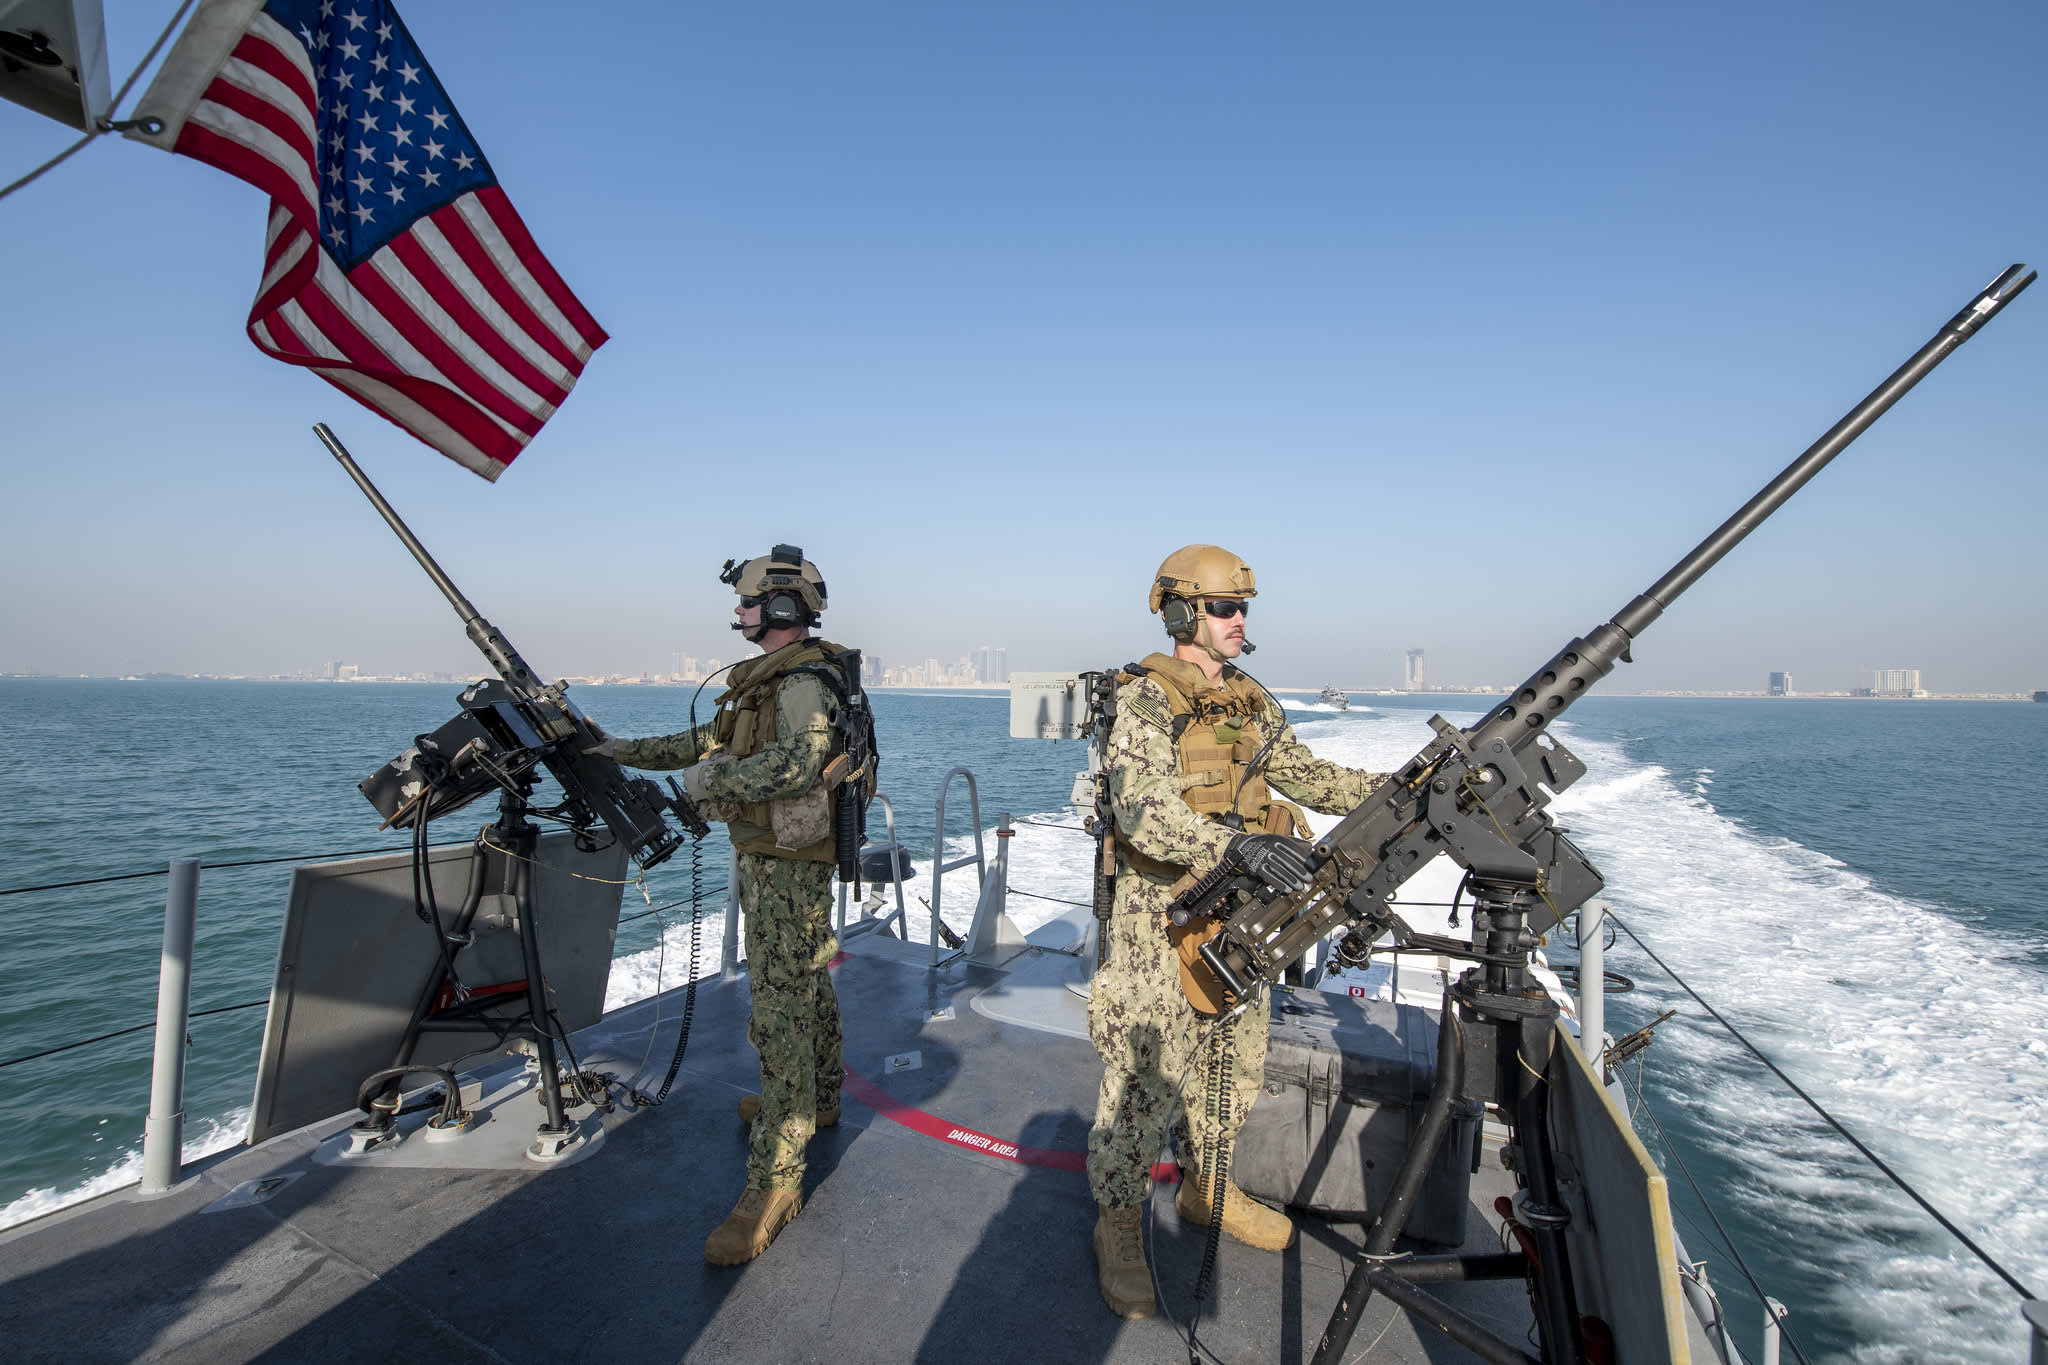 United States Largest Navy In the world